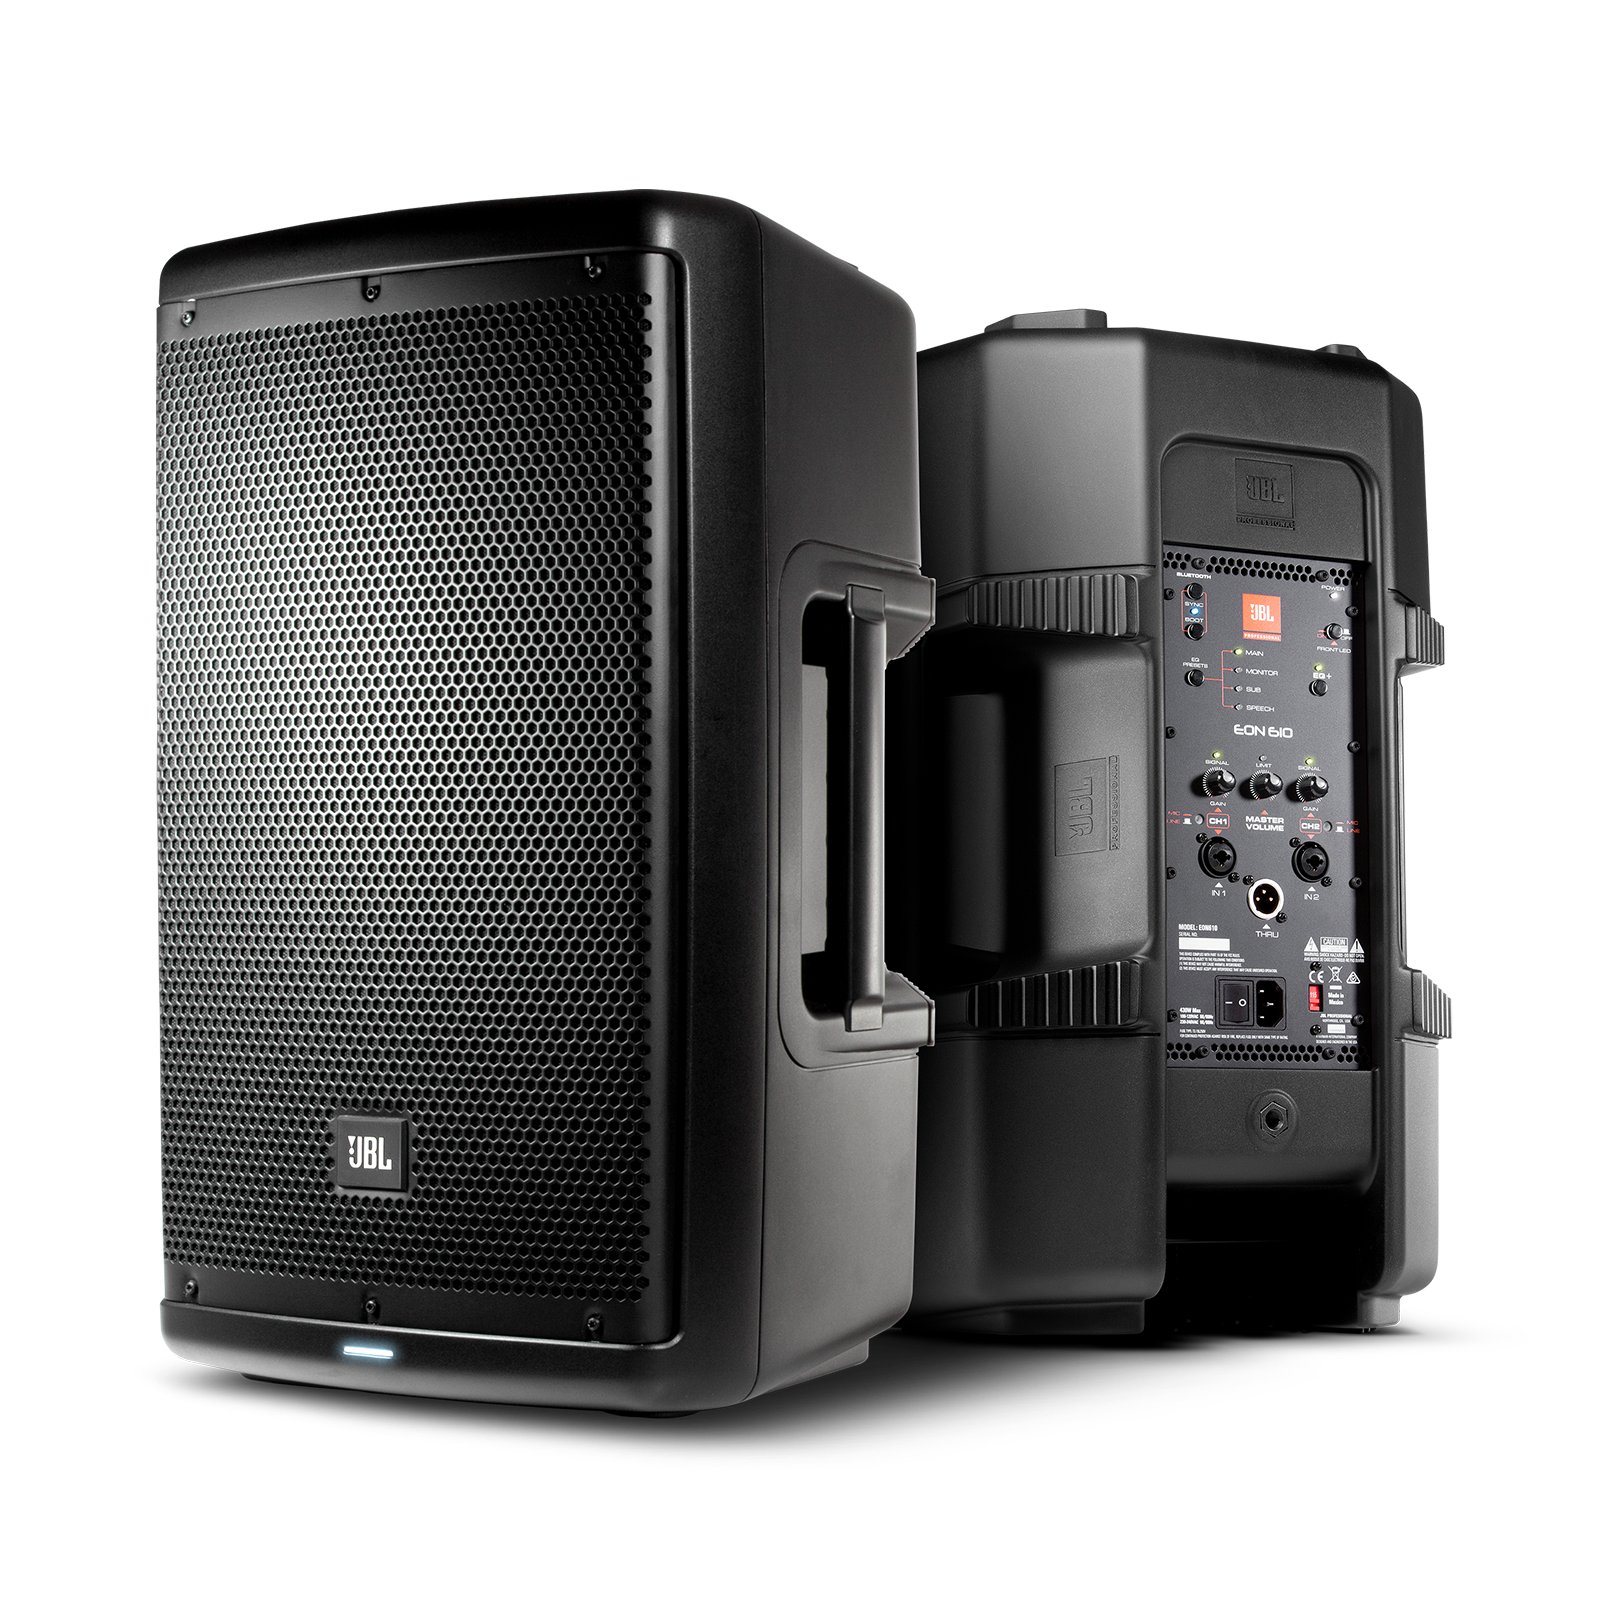 jbl eon610 10 two way multipurpose self powered sound reinforcement rh jbl com JBL EON 1500 Specs JBL EON 15 Specs